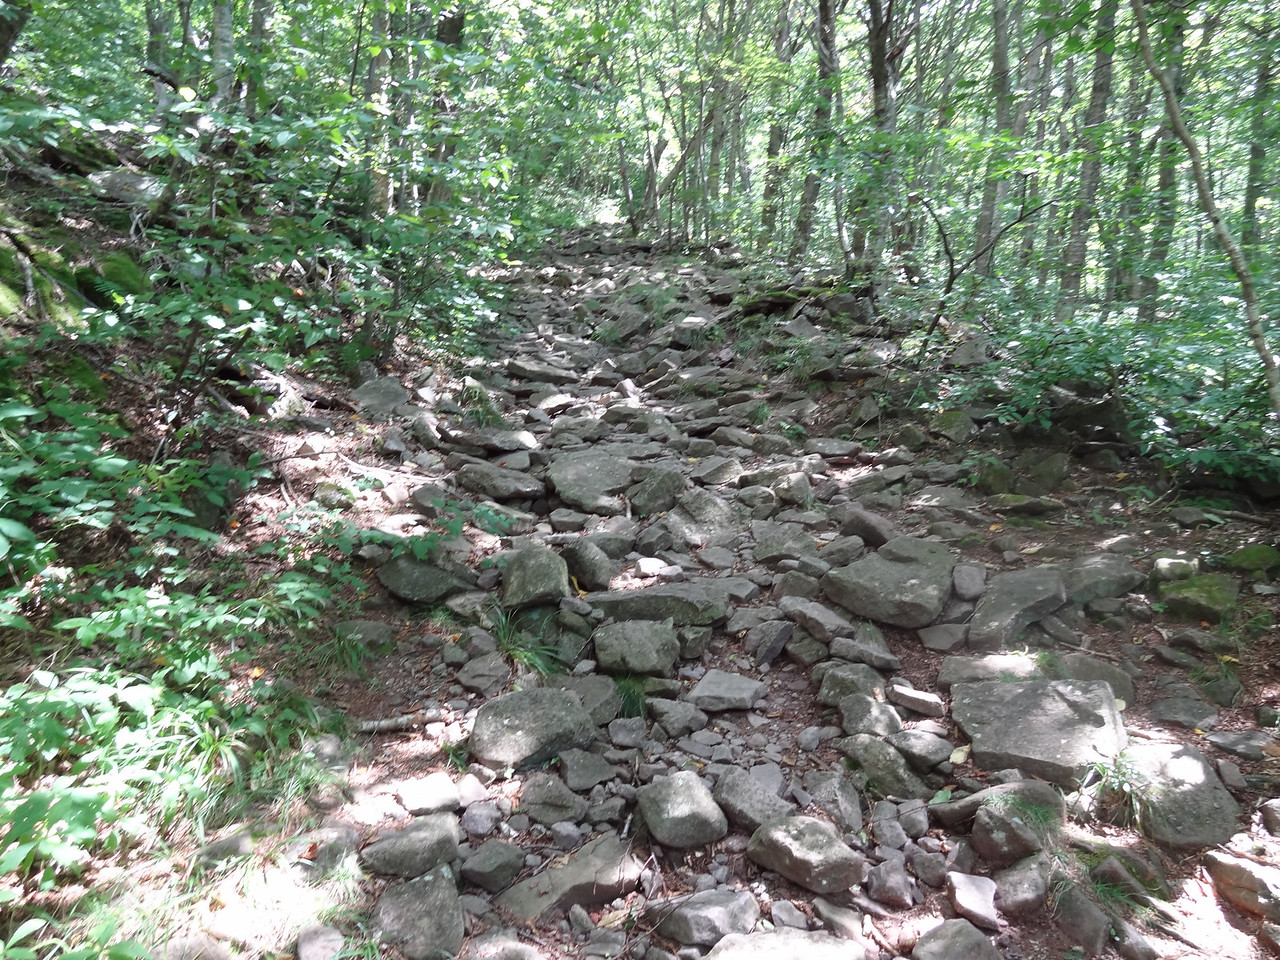 This was the middle section: a 1.3 mile section of rocky mess.